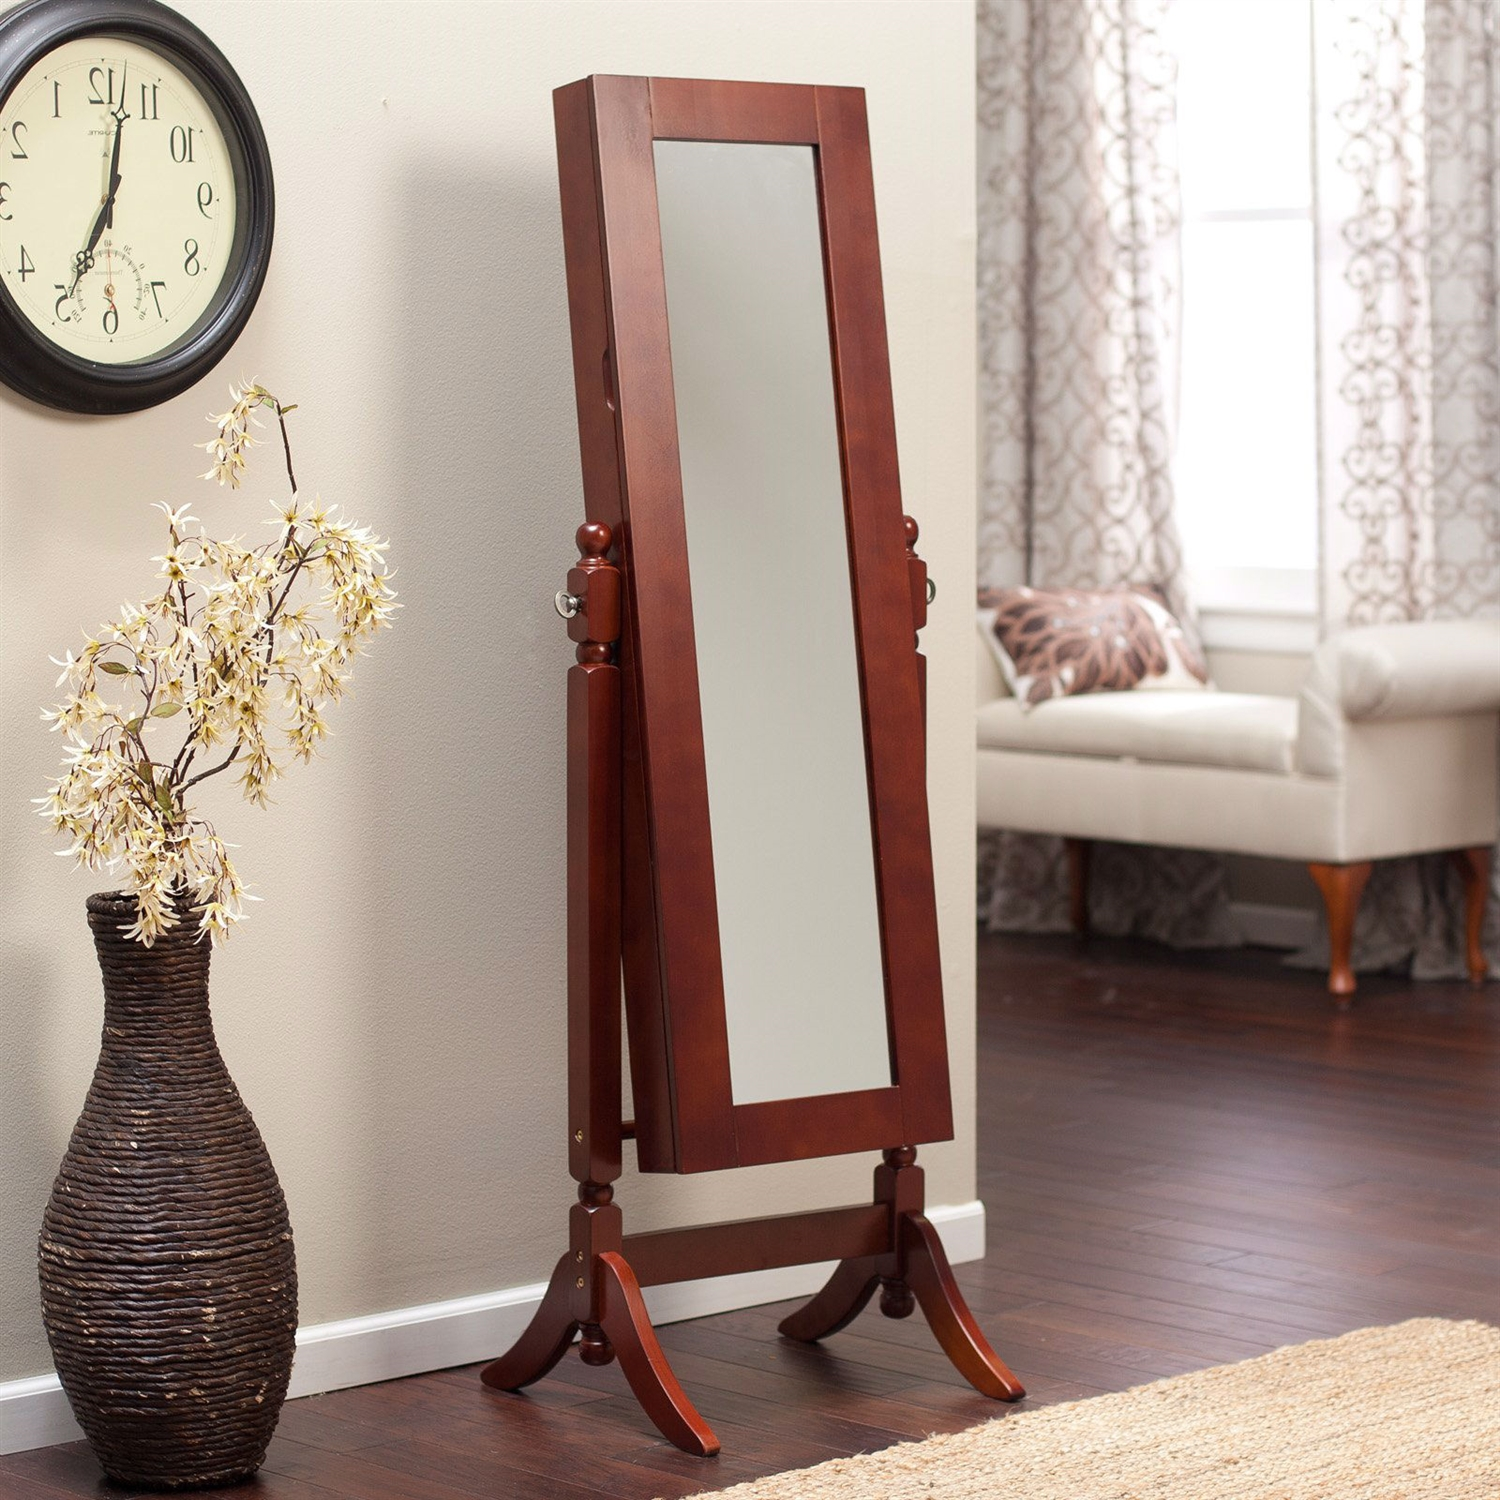 Full Length Tilting Cheval Mirror Jewelry Armoire in Cherry Wood